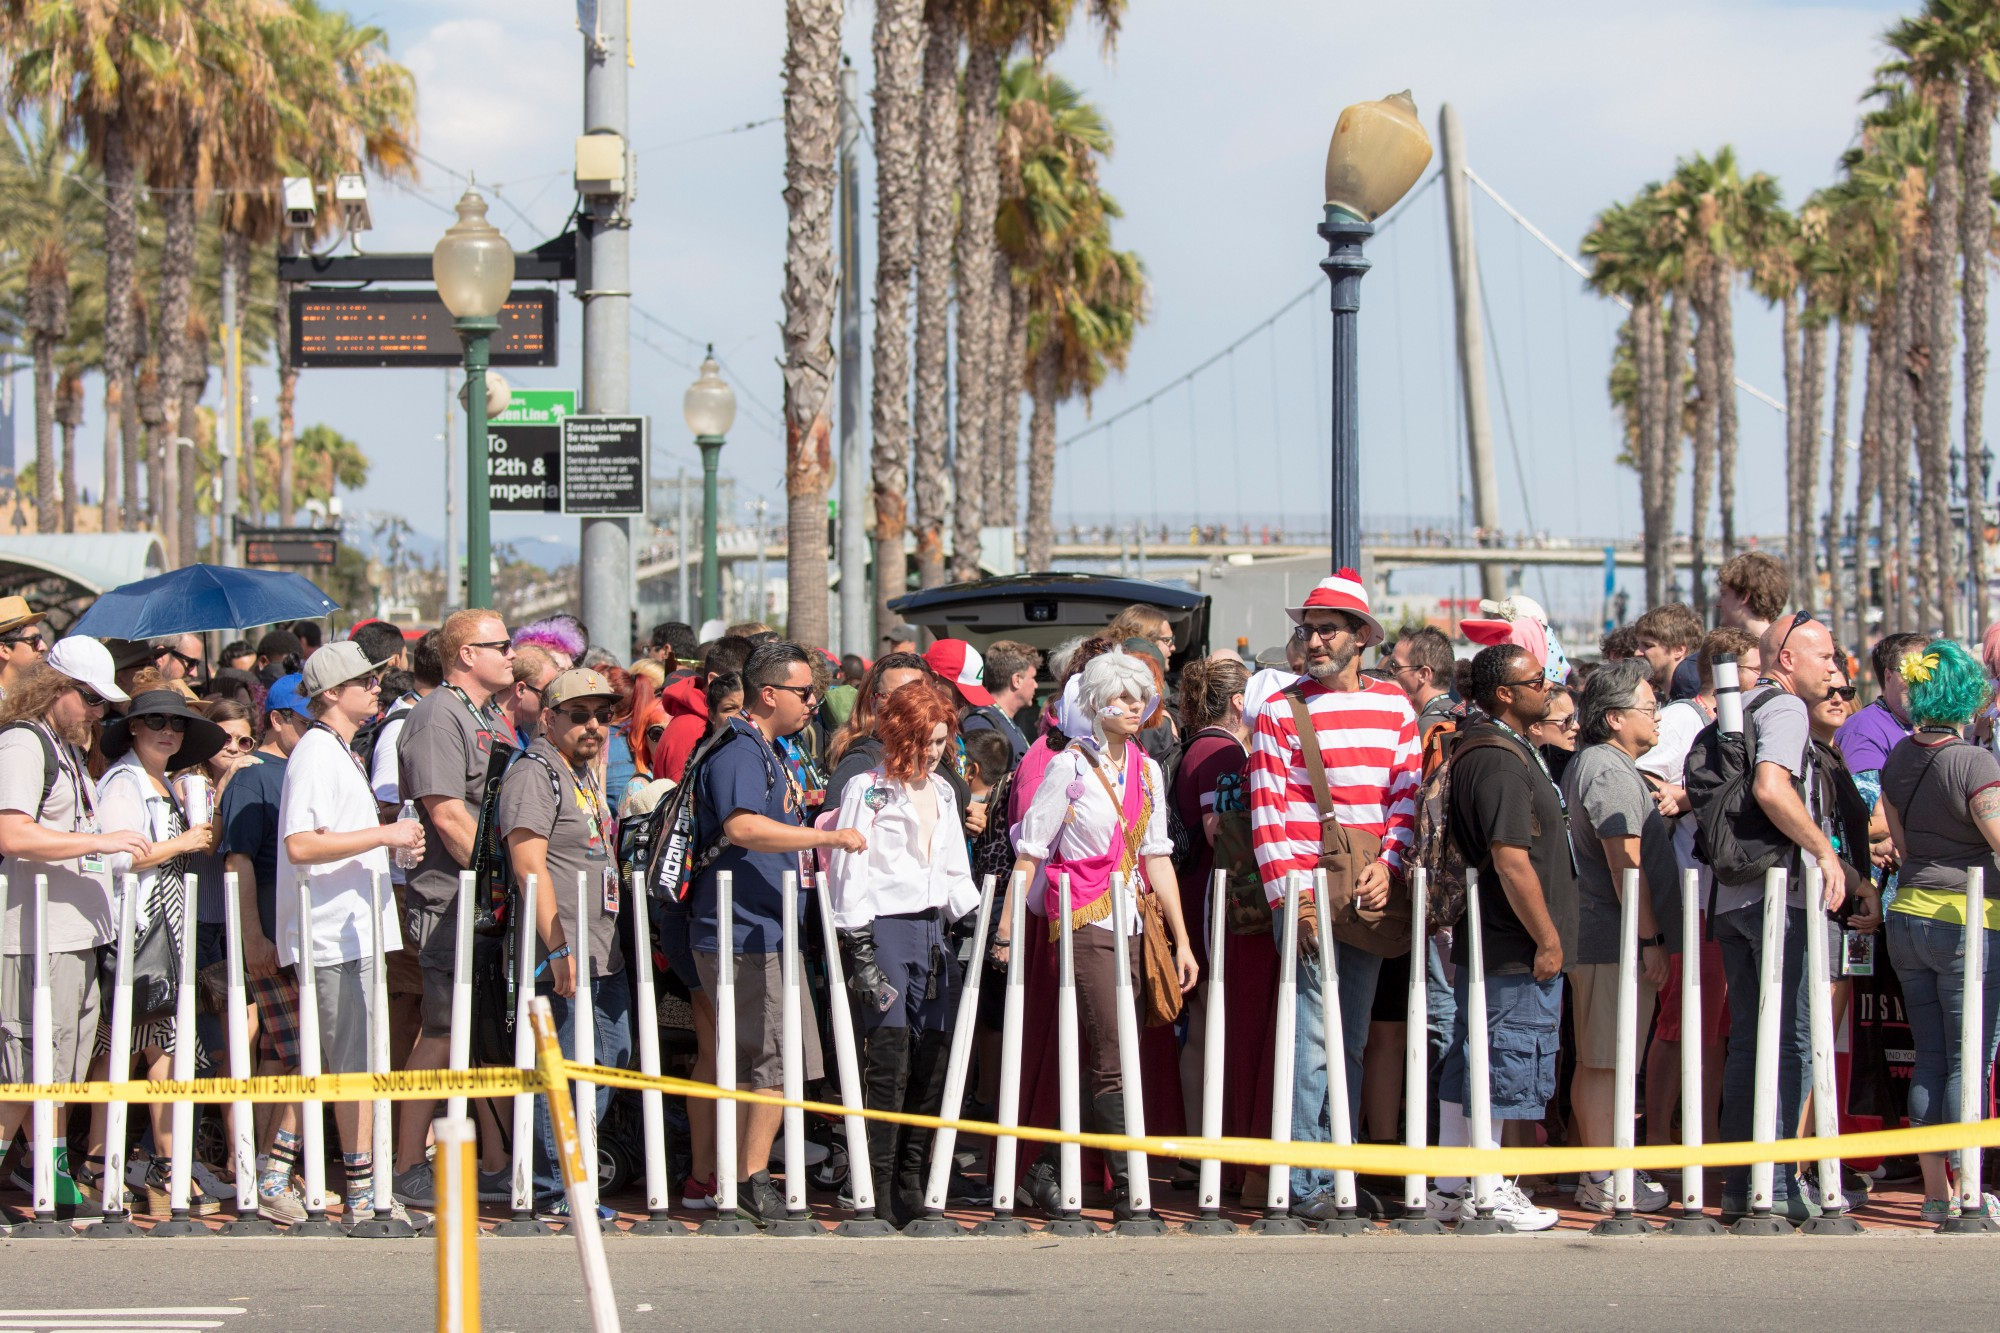 Attendees wait to cross the street at San Diego Comic-Con.  Image credit : Shutterstock